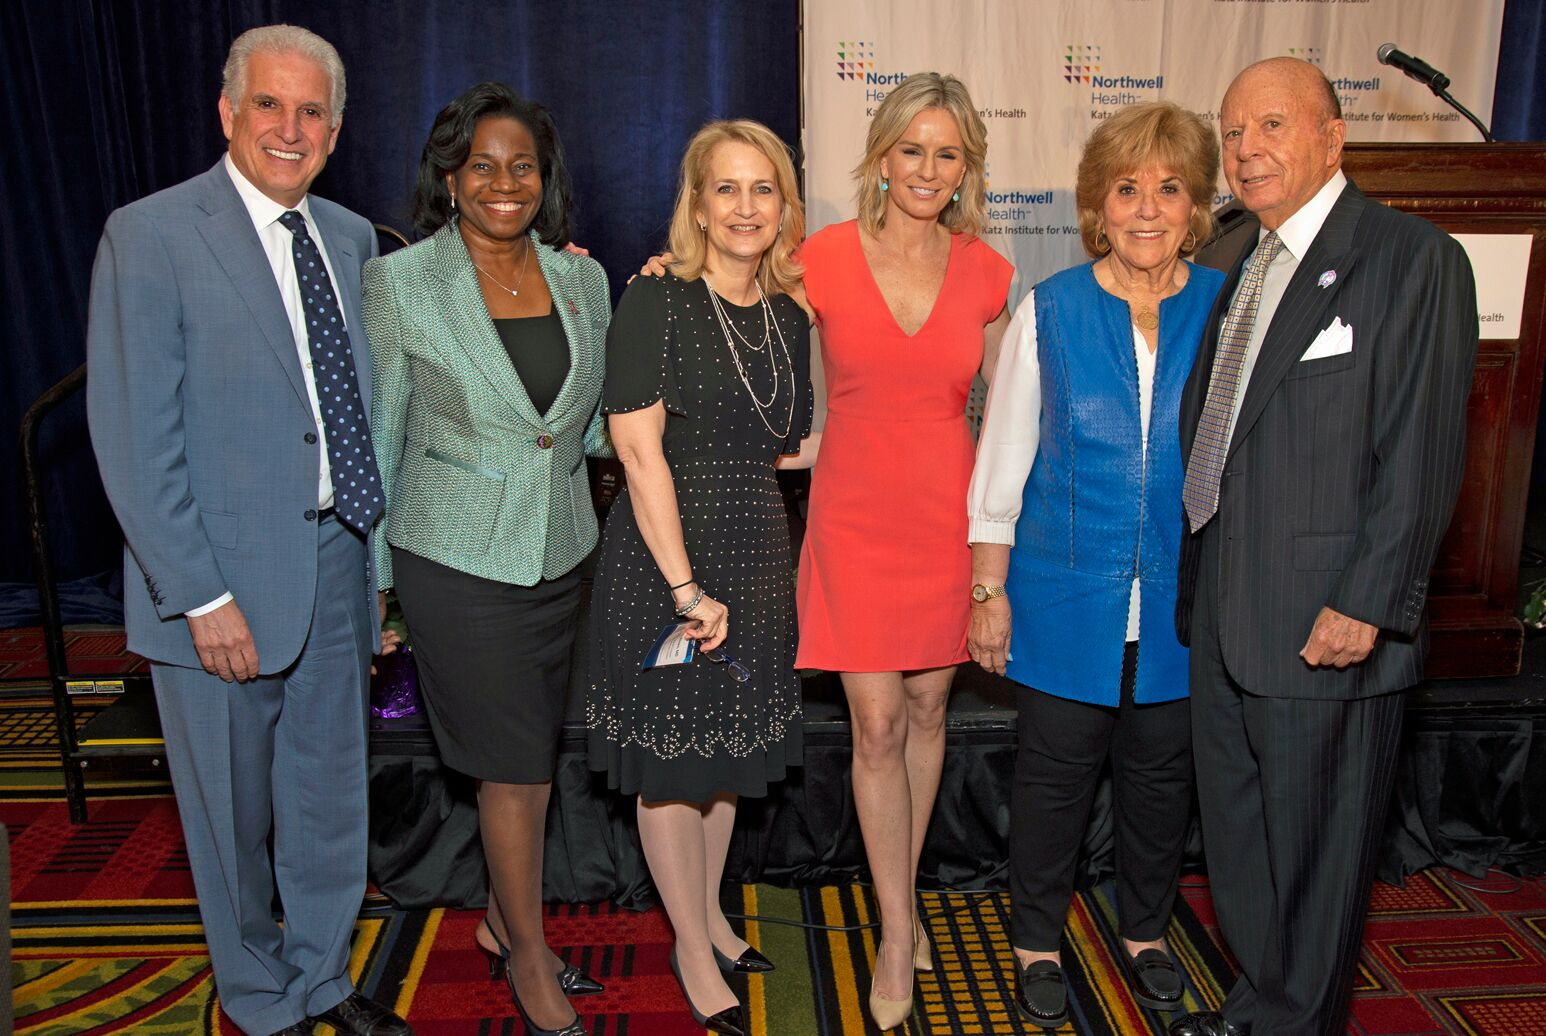 Mark Claster, Jenifer Mieres, Stacey Rosen with Saul Katz and others are the Katz Women's Health Conference